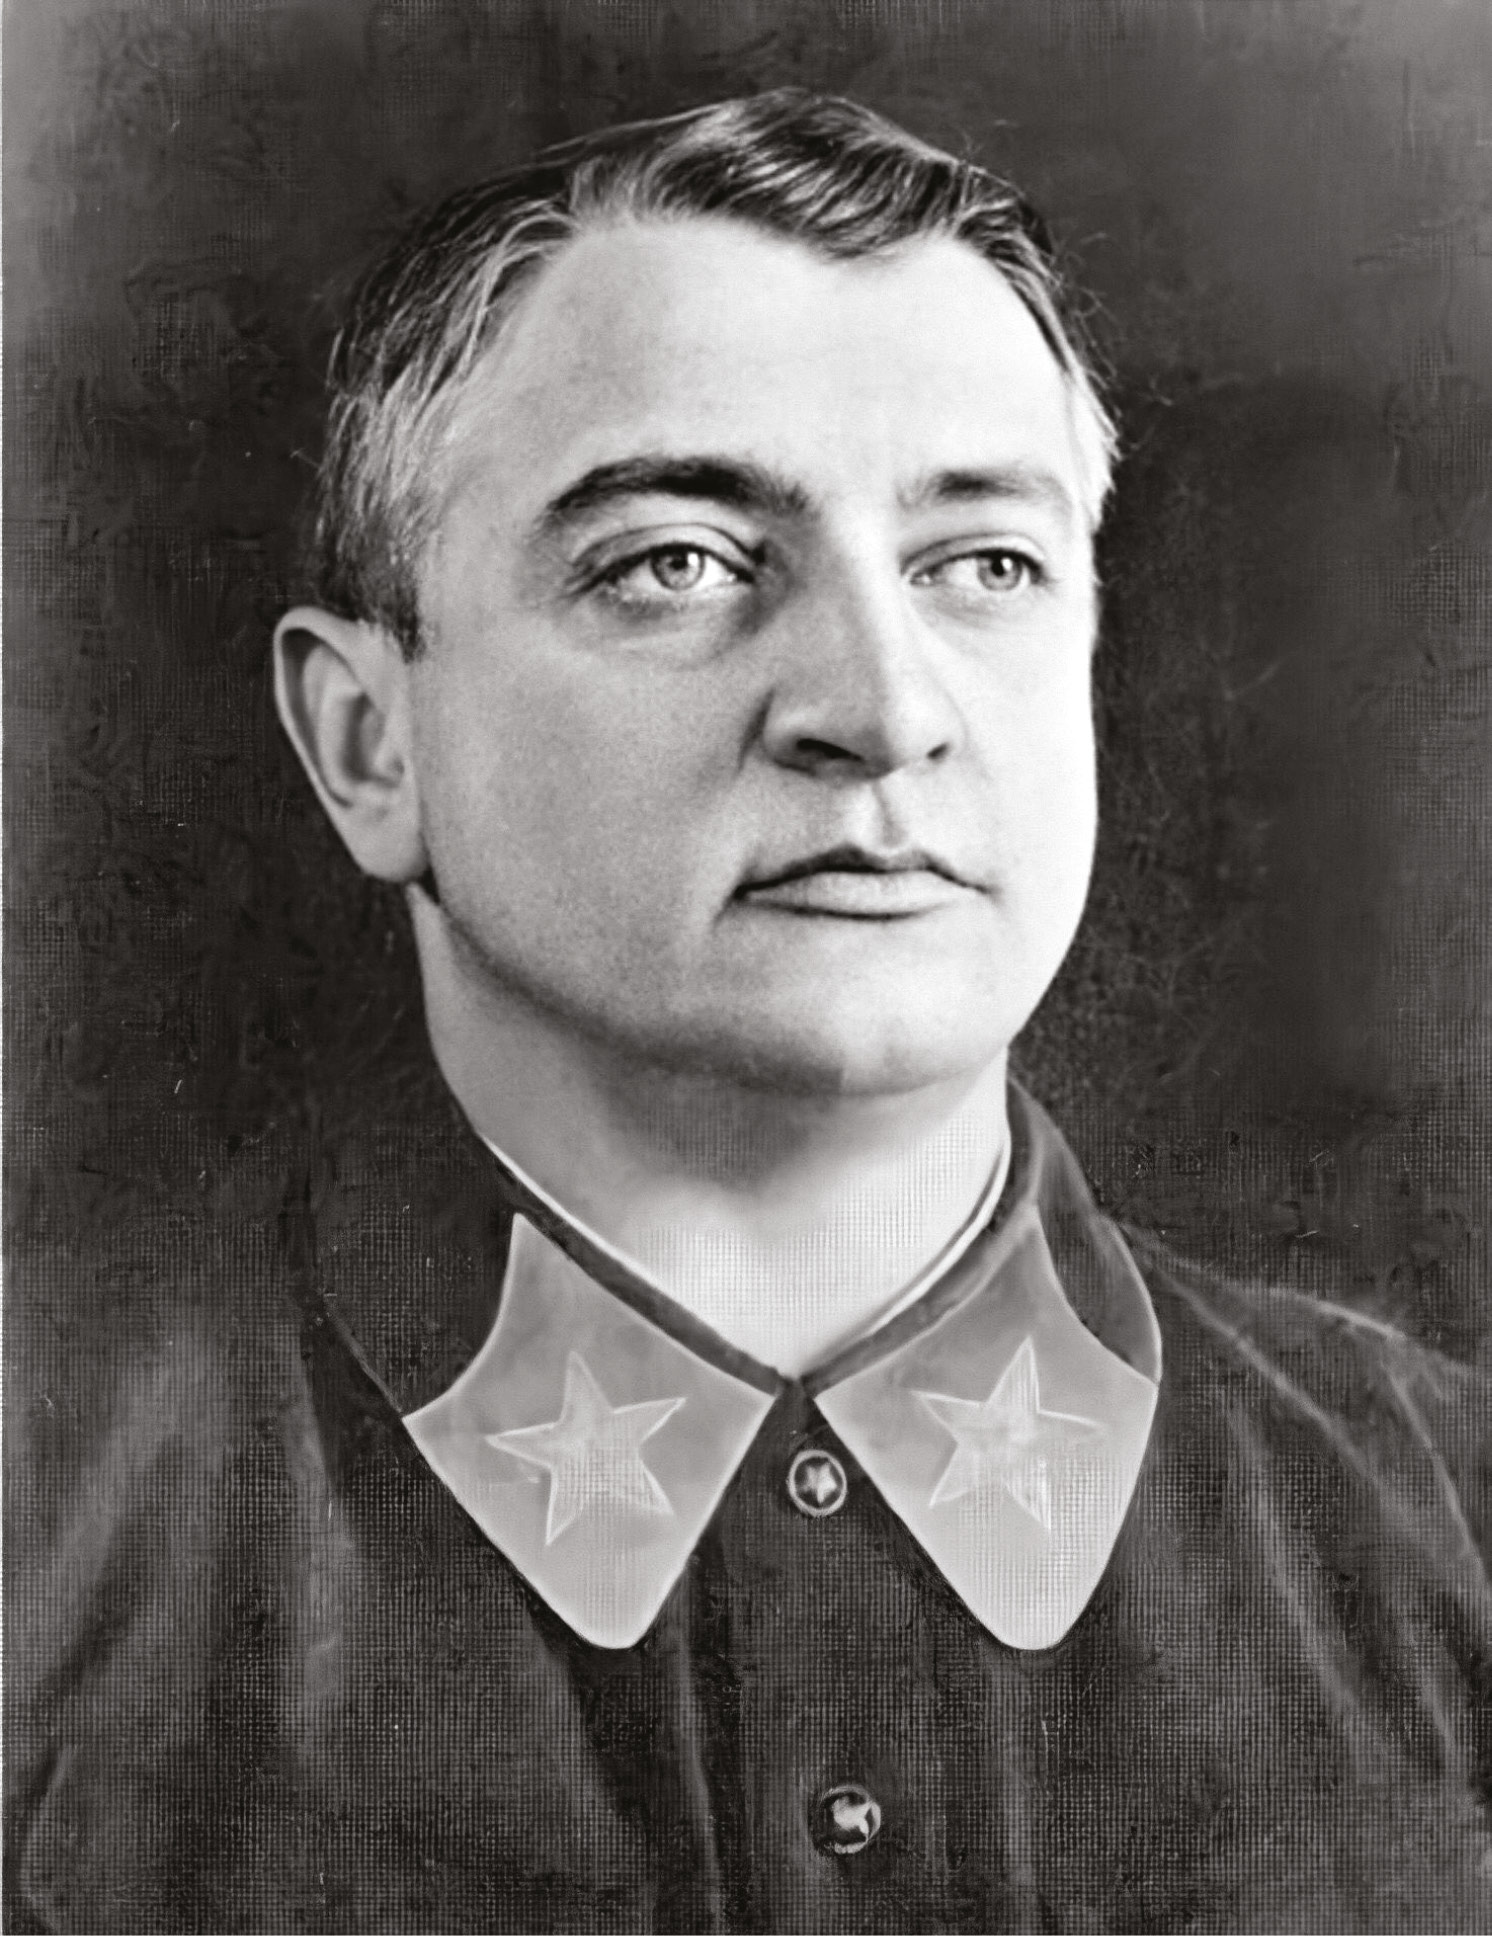 LEFT Mikhail Tukhachevsky (1893-1937), the brilliant military innovator murdered in the Stalinist purges.